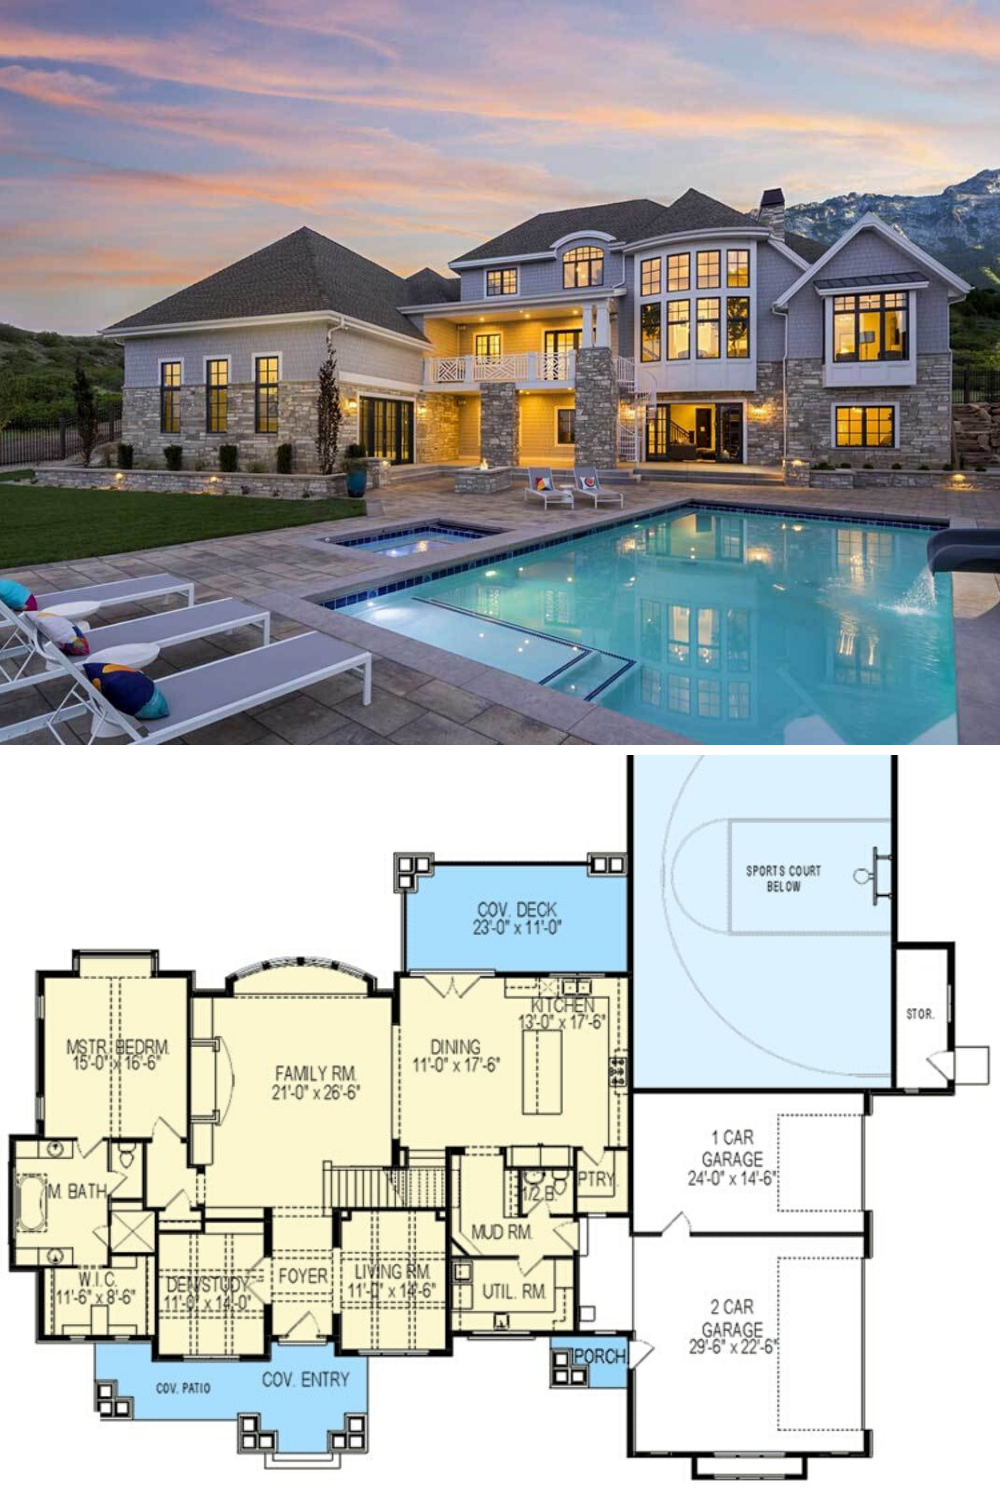 6 Bedroom Two Story Northwest Home With Sports Court Floor Plan Pool House Plans Mansion Floor Plan Craftsman House Plans